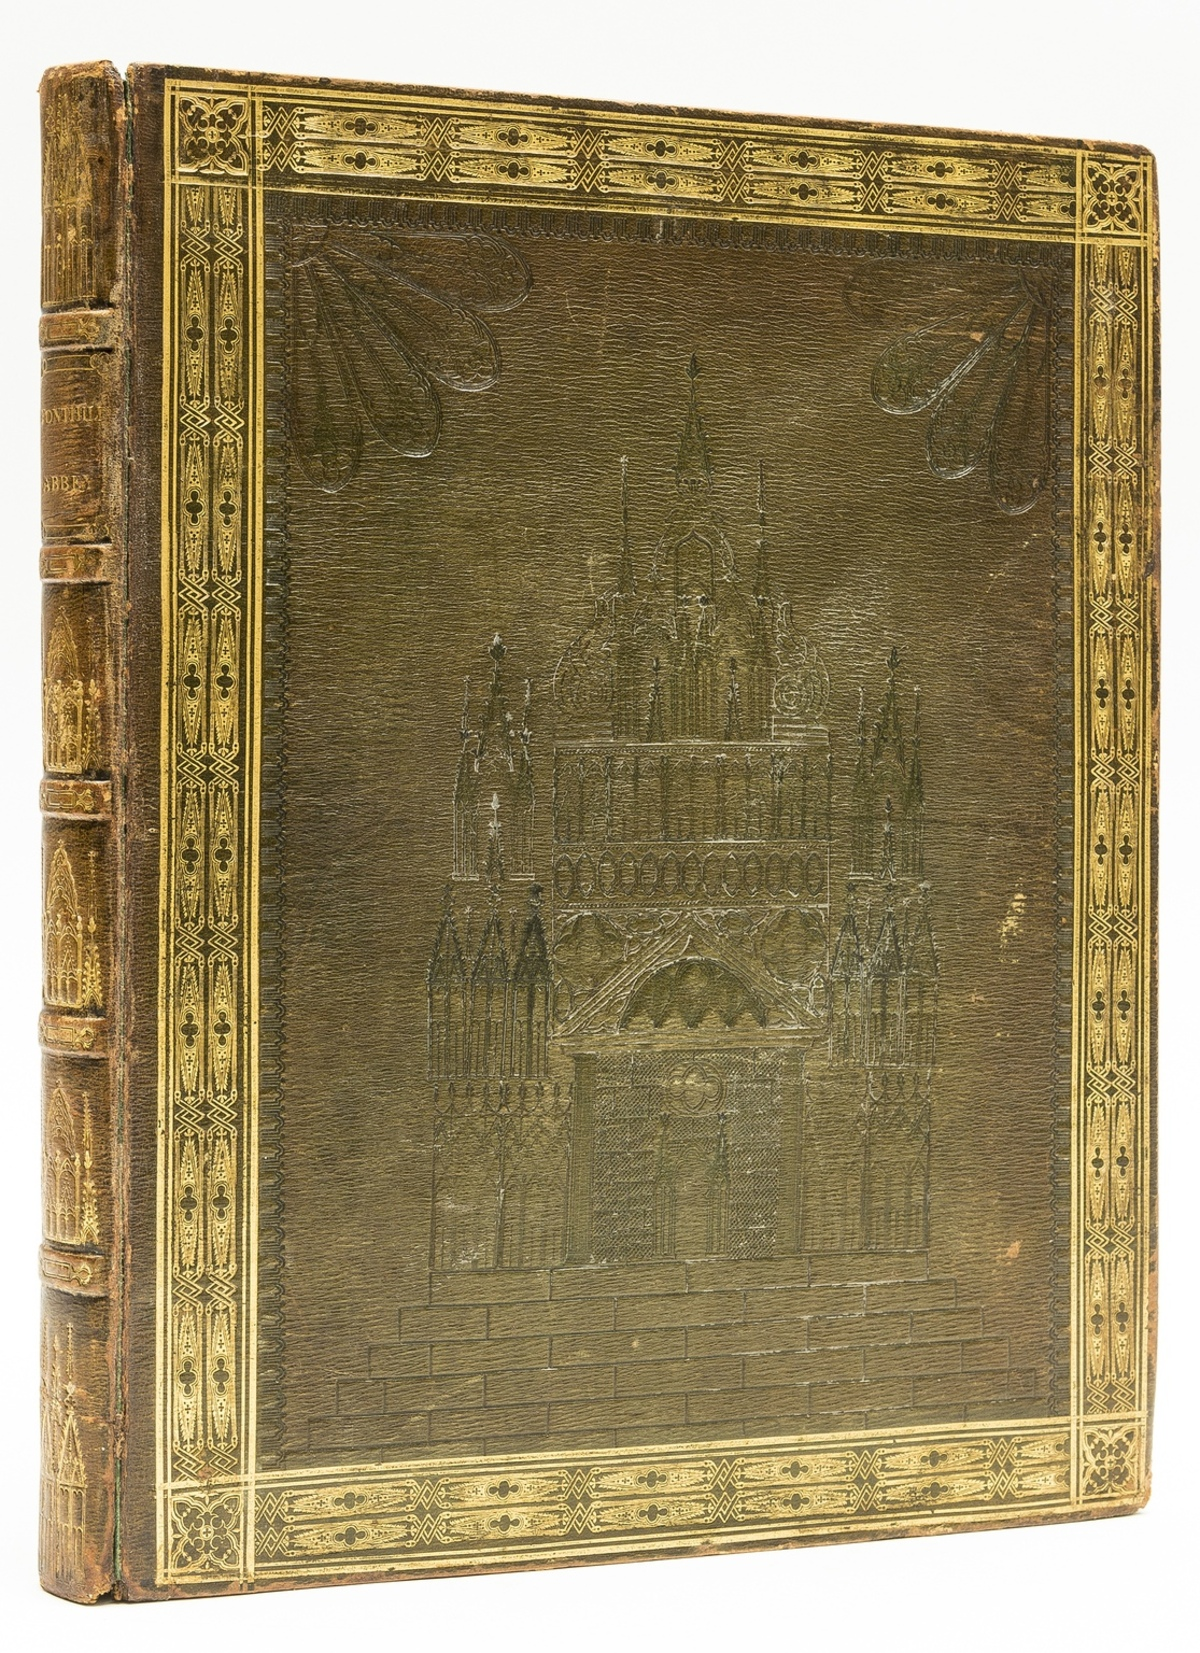 Wiltshire.- Rutter (John) Delineations of Fonthill and its Abbey, first edition, large paper copy, … - Image 2 of 2